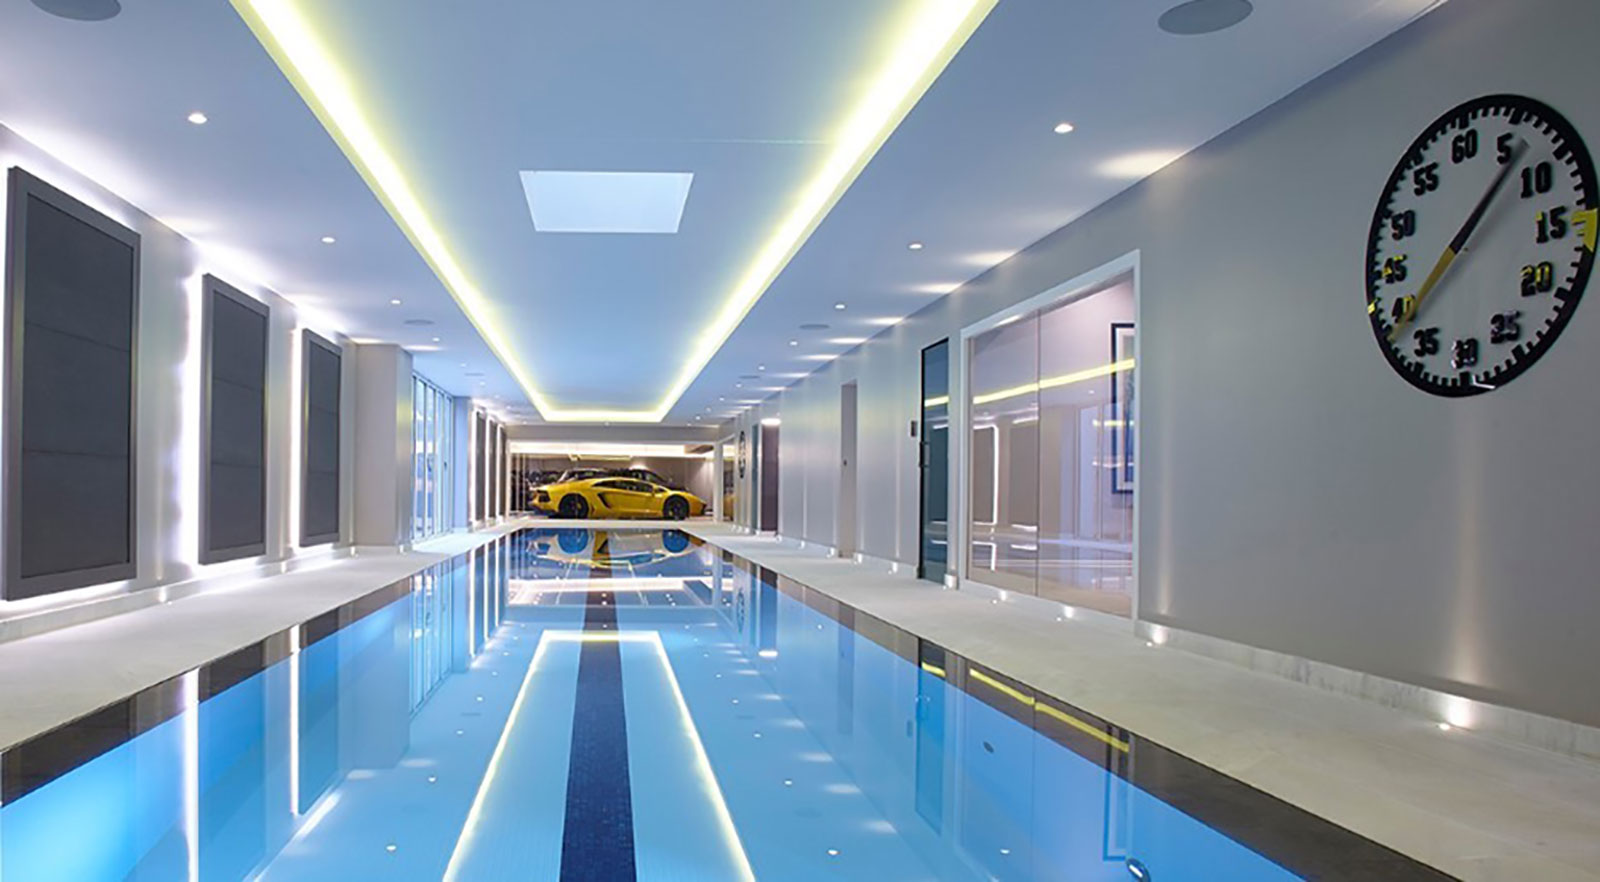 Luxury Swimming Pool Designs You Won't Believe